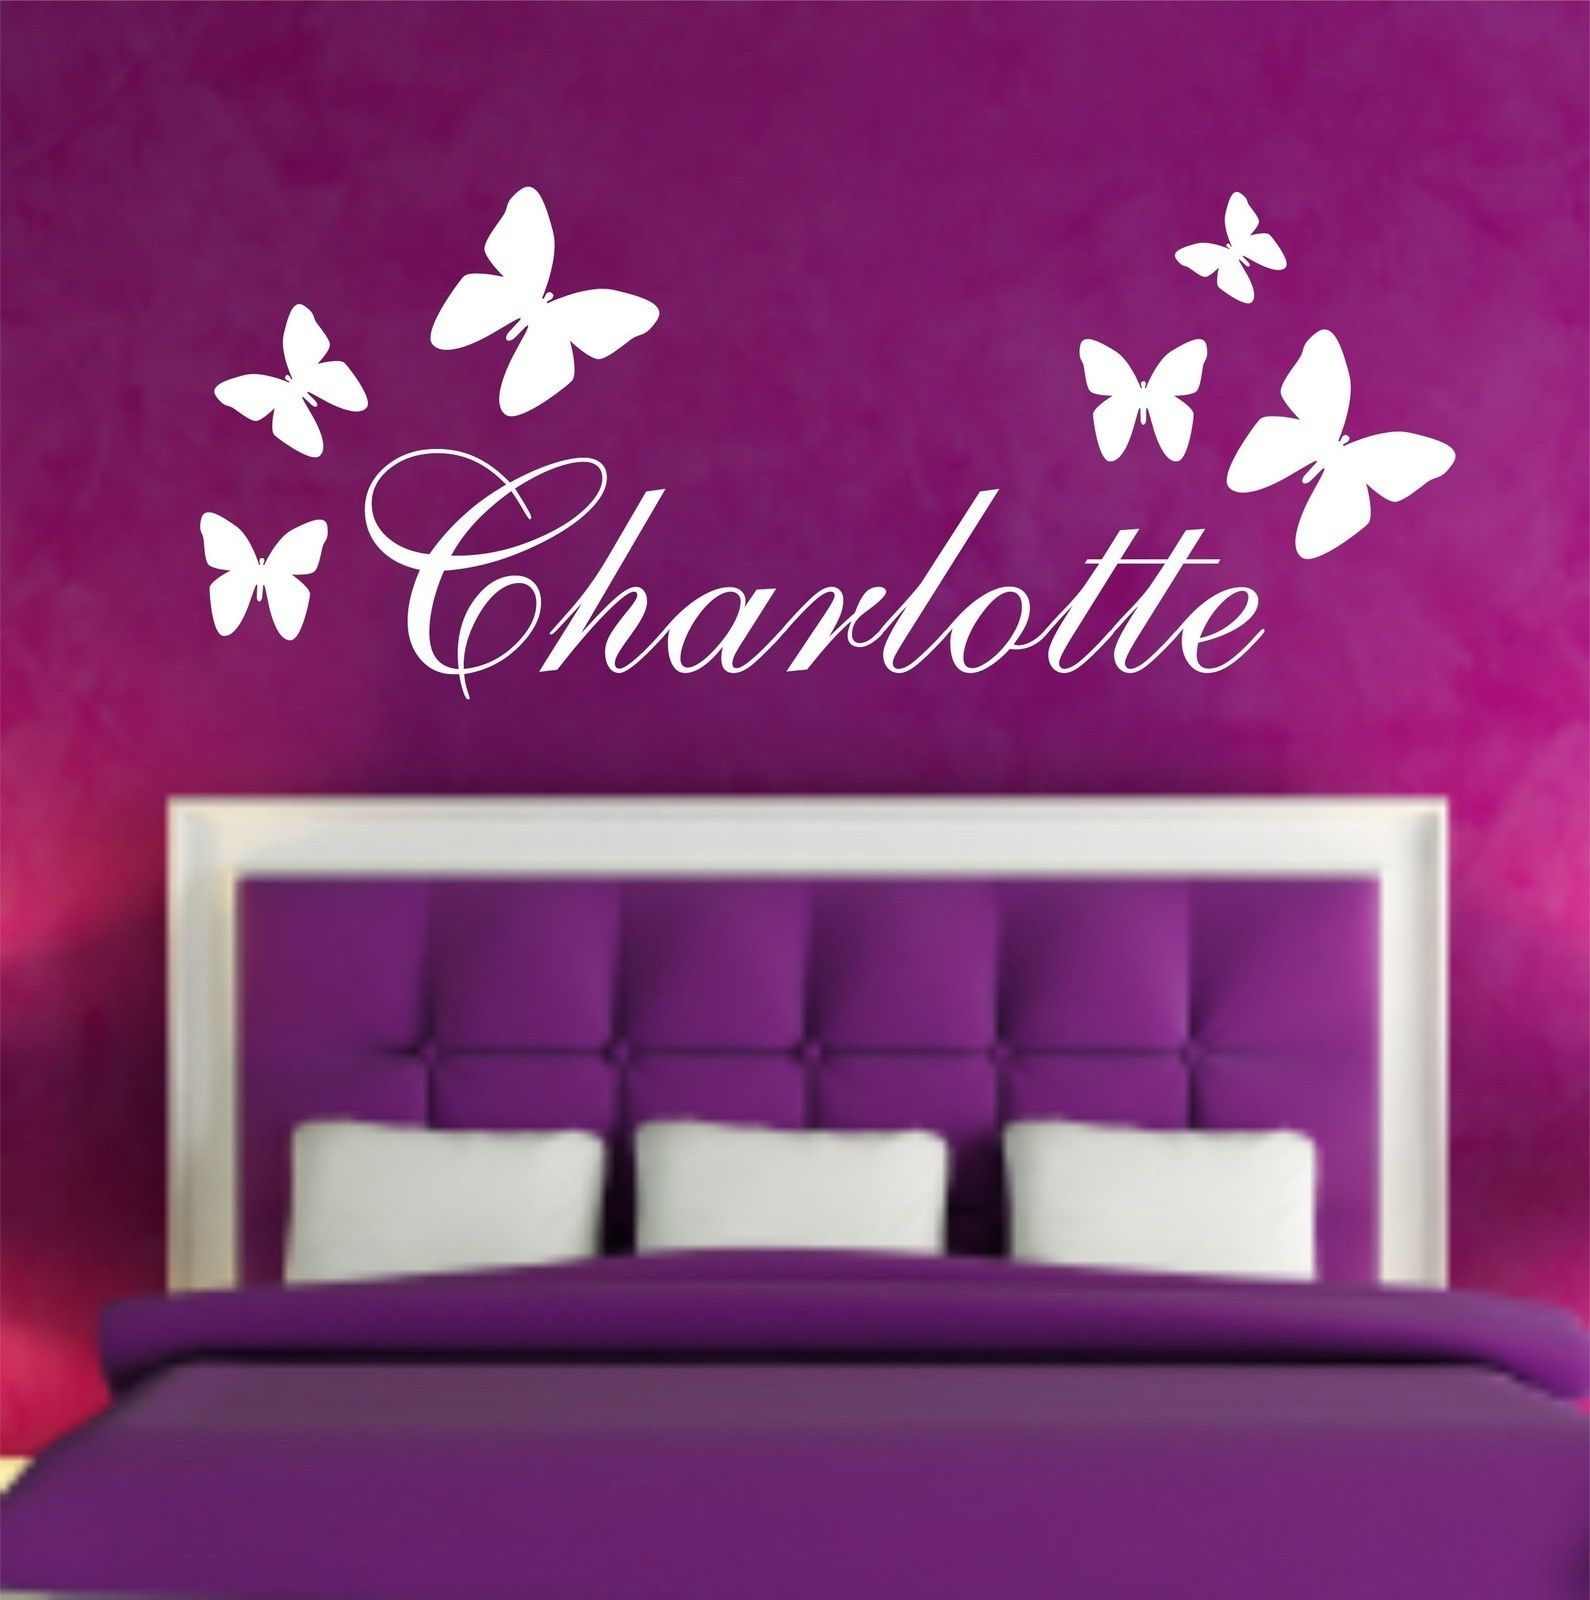 Personalised butterfly any name vinyl wall sticker art decal kids bedroom free shipping ws115 in wall stickers from home garden on aliexpress com